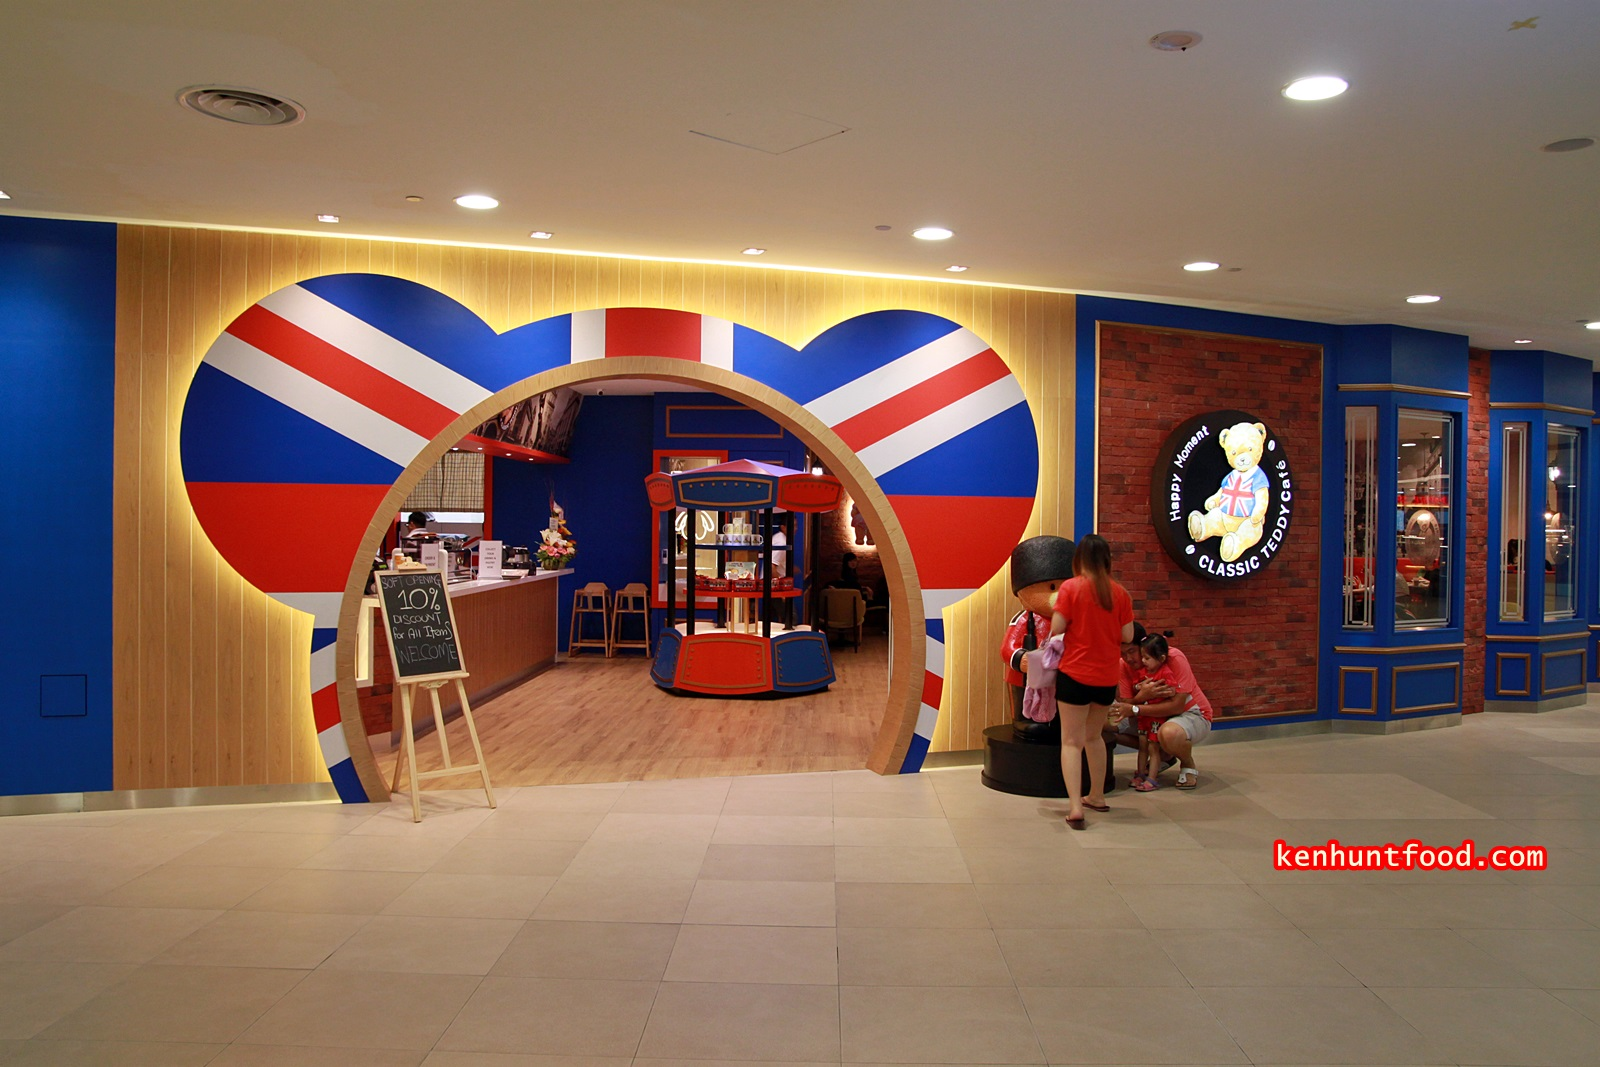 Ken hunts food classic teddy cafe 1st avenue mall for Terrace 9 classic penang